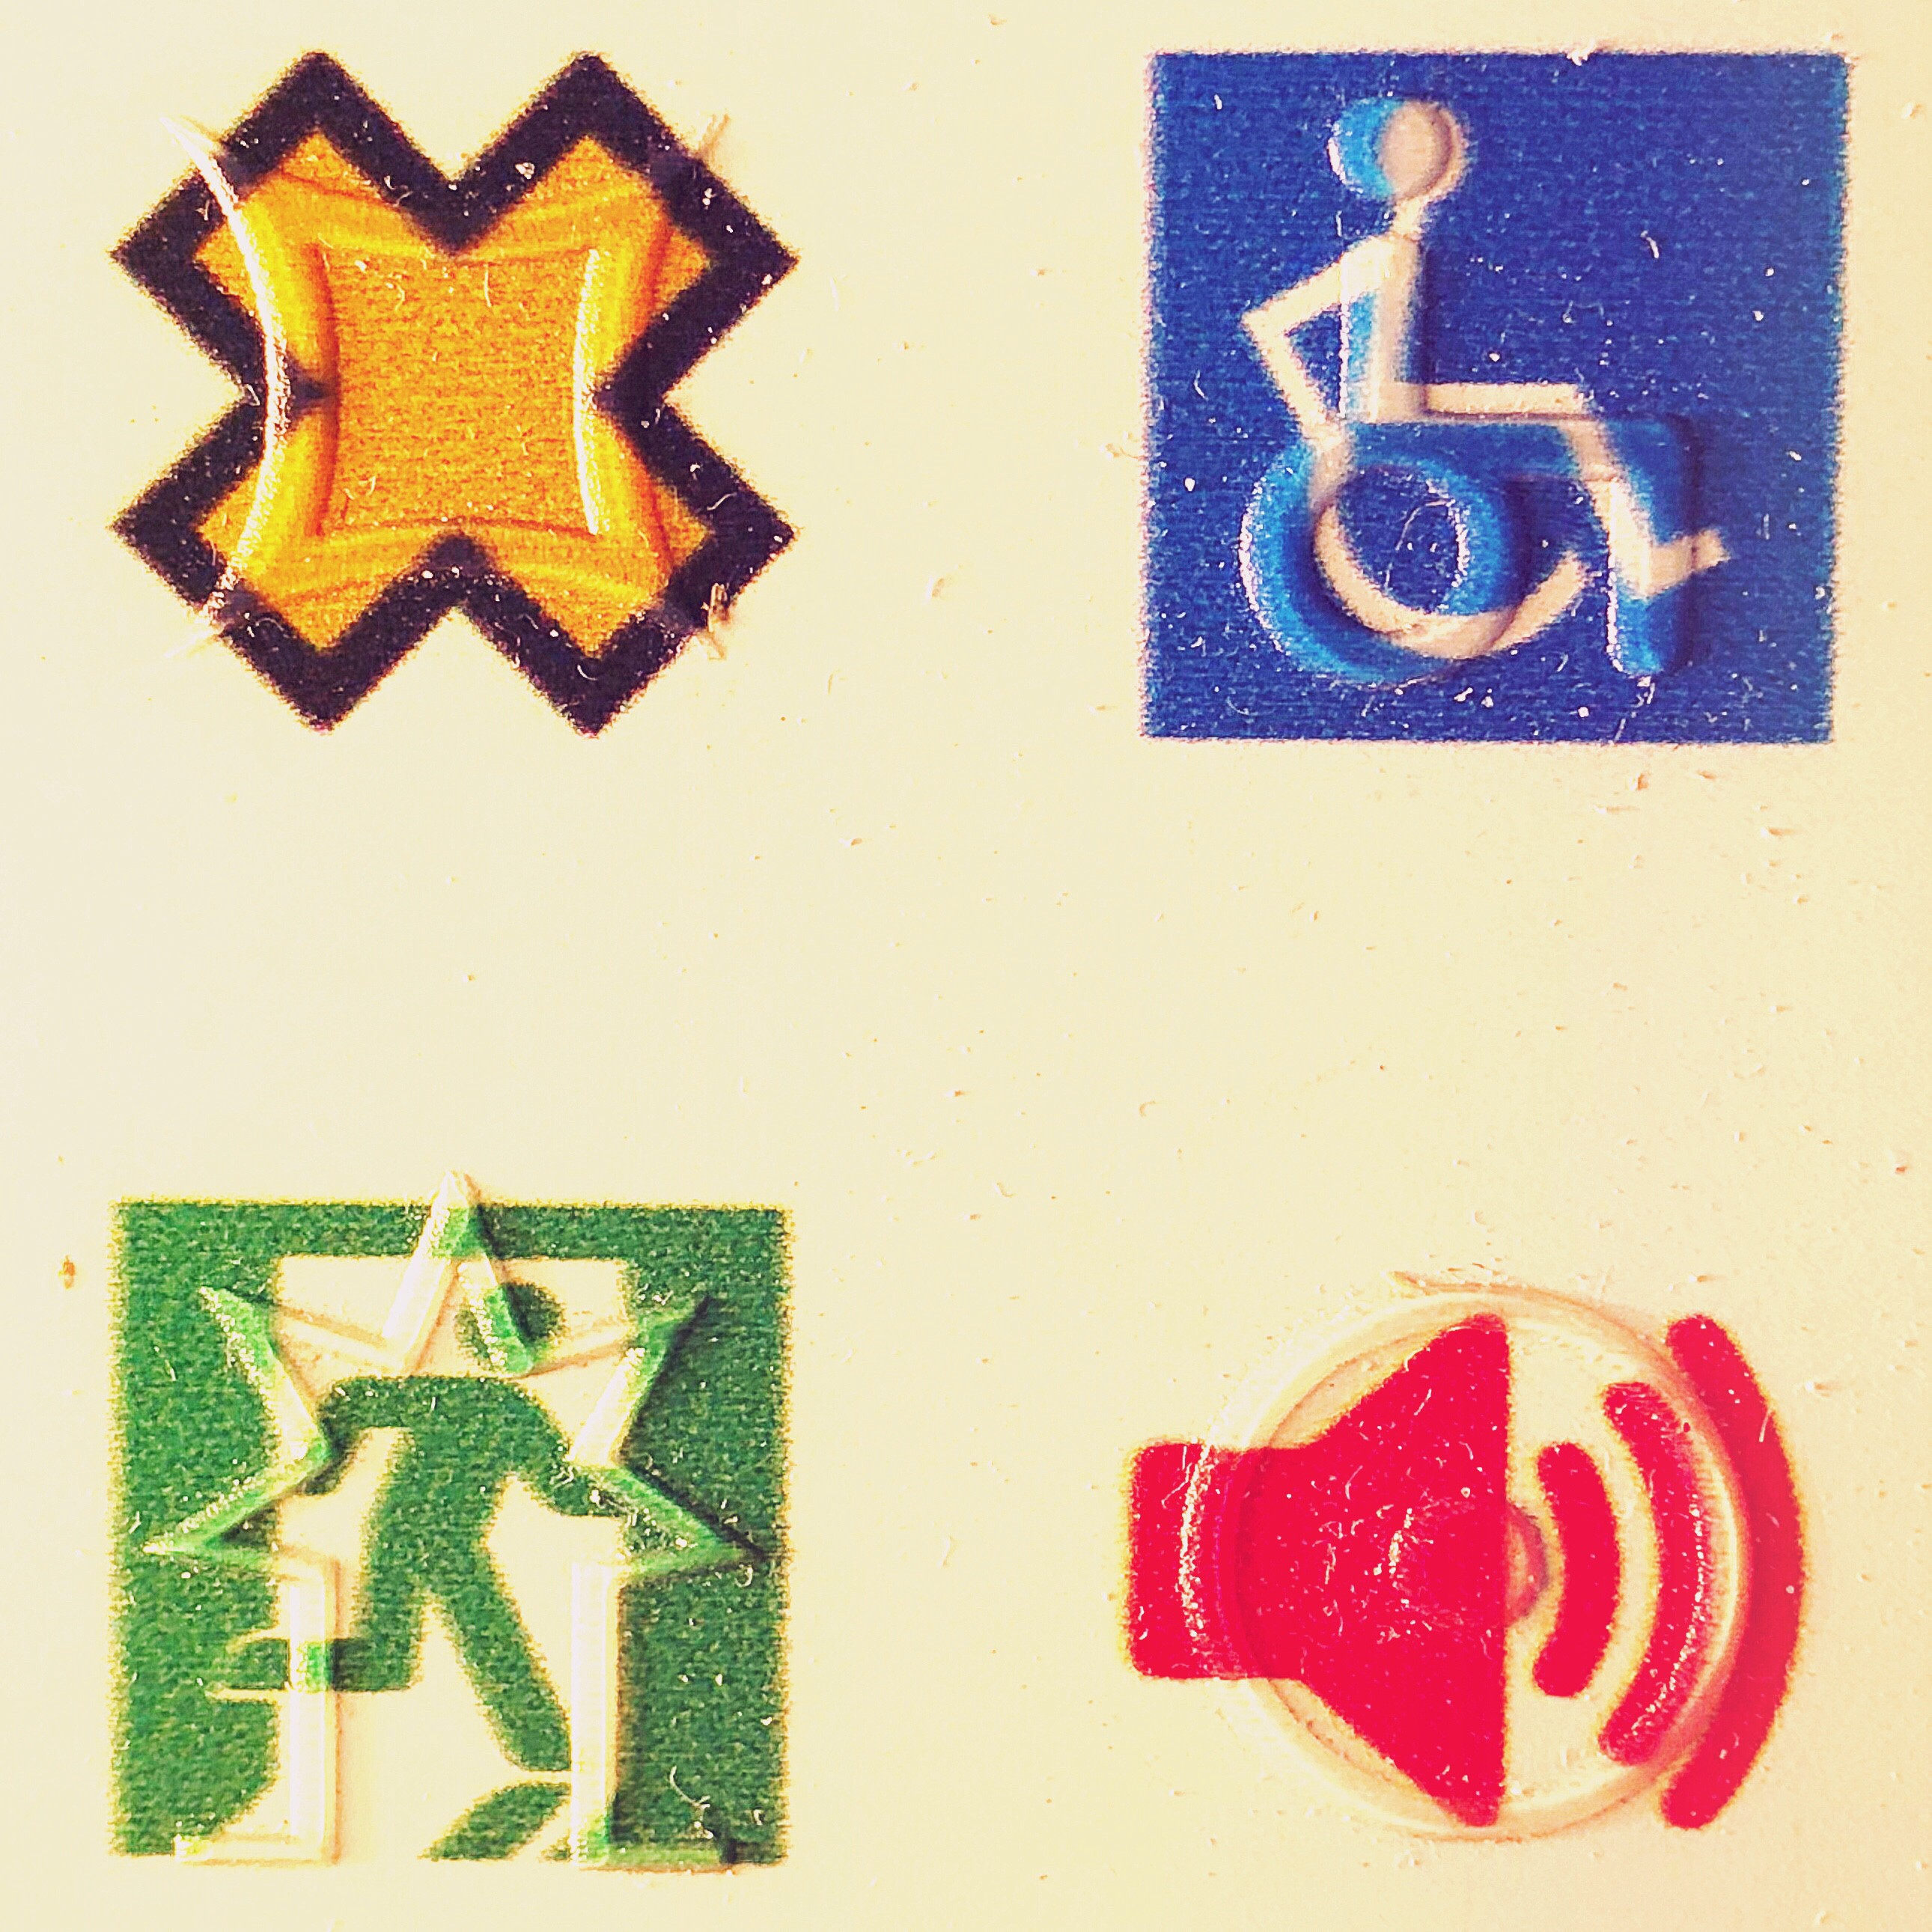 4 visual symbols with tactile symbols overlaid. The tactile symbols do not replicate the visual but are designed for touch